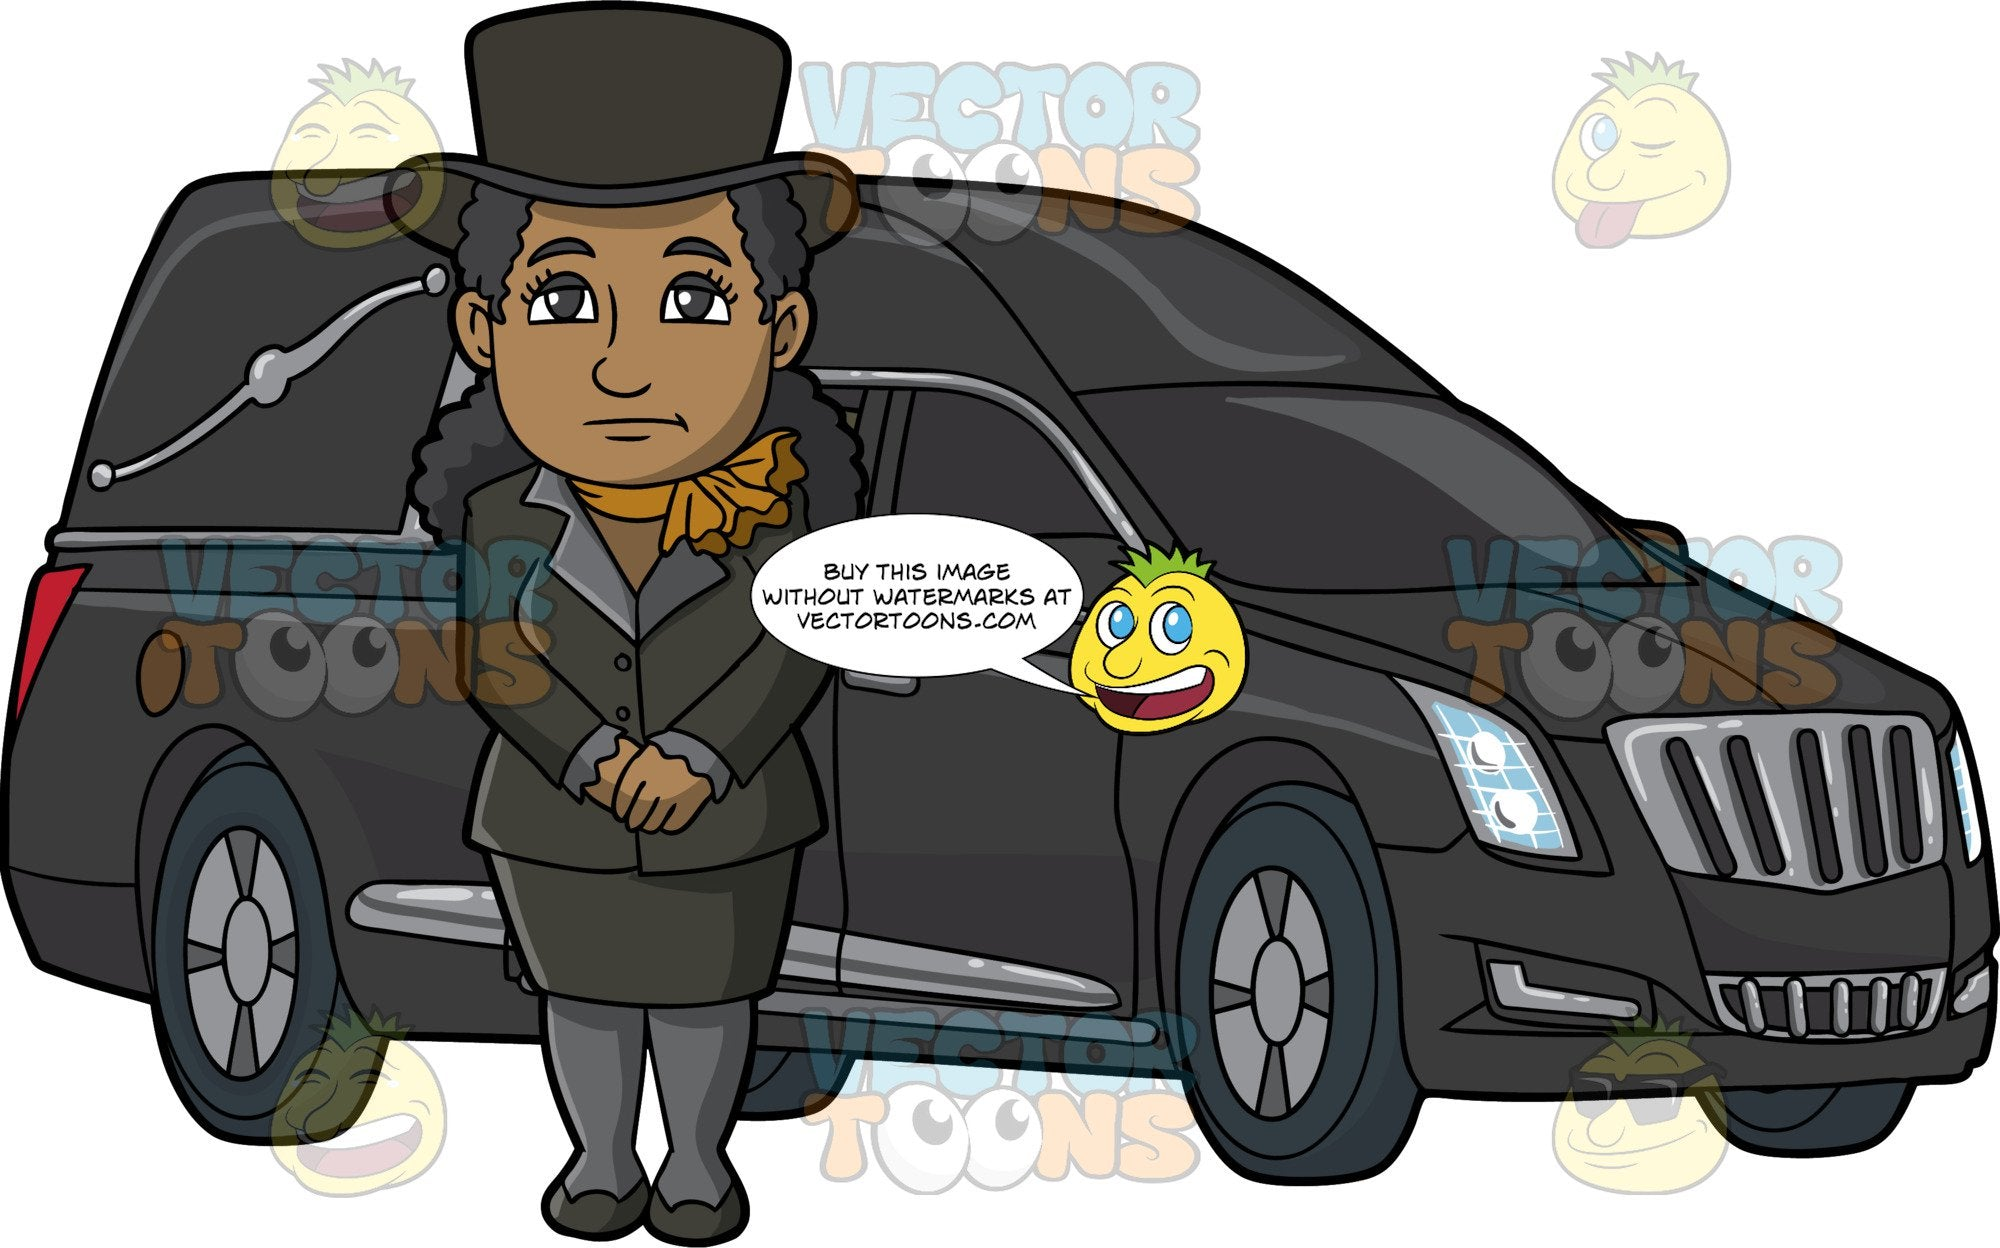 A Black Female Funeral Director Beside A Hearse. A black woman with curly hair, wearing a black top hat, dress jacket, skirt, heels, dark gray stockings, dark mustard yellow scarf around her neck, frowns while standing at the side of a black hearse